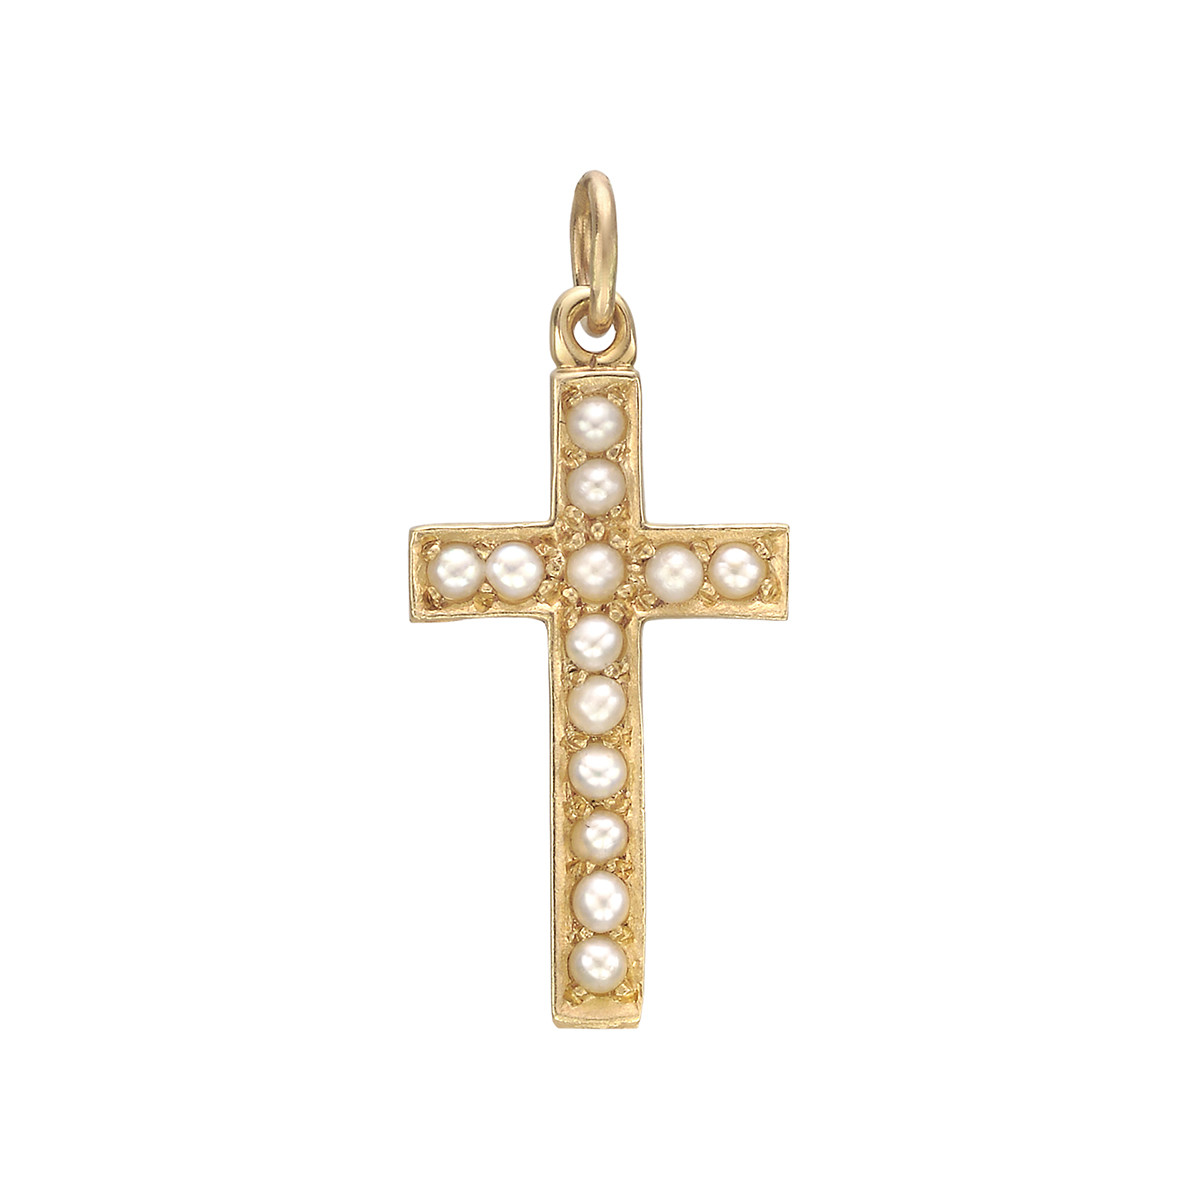 Medium 14k Yellow Gold & Pearl Cross Pendant